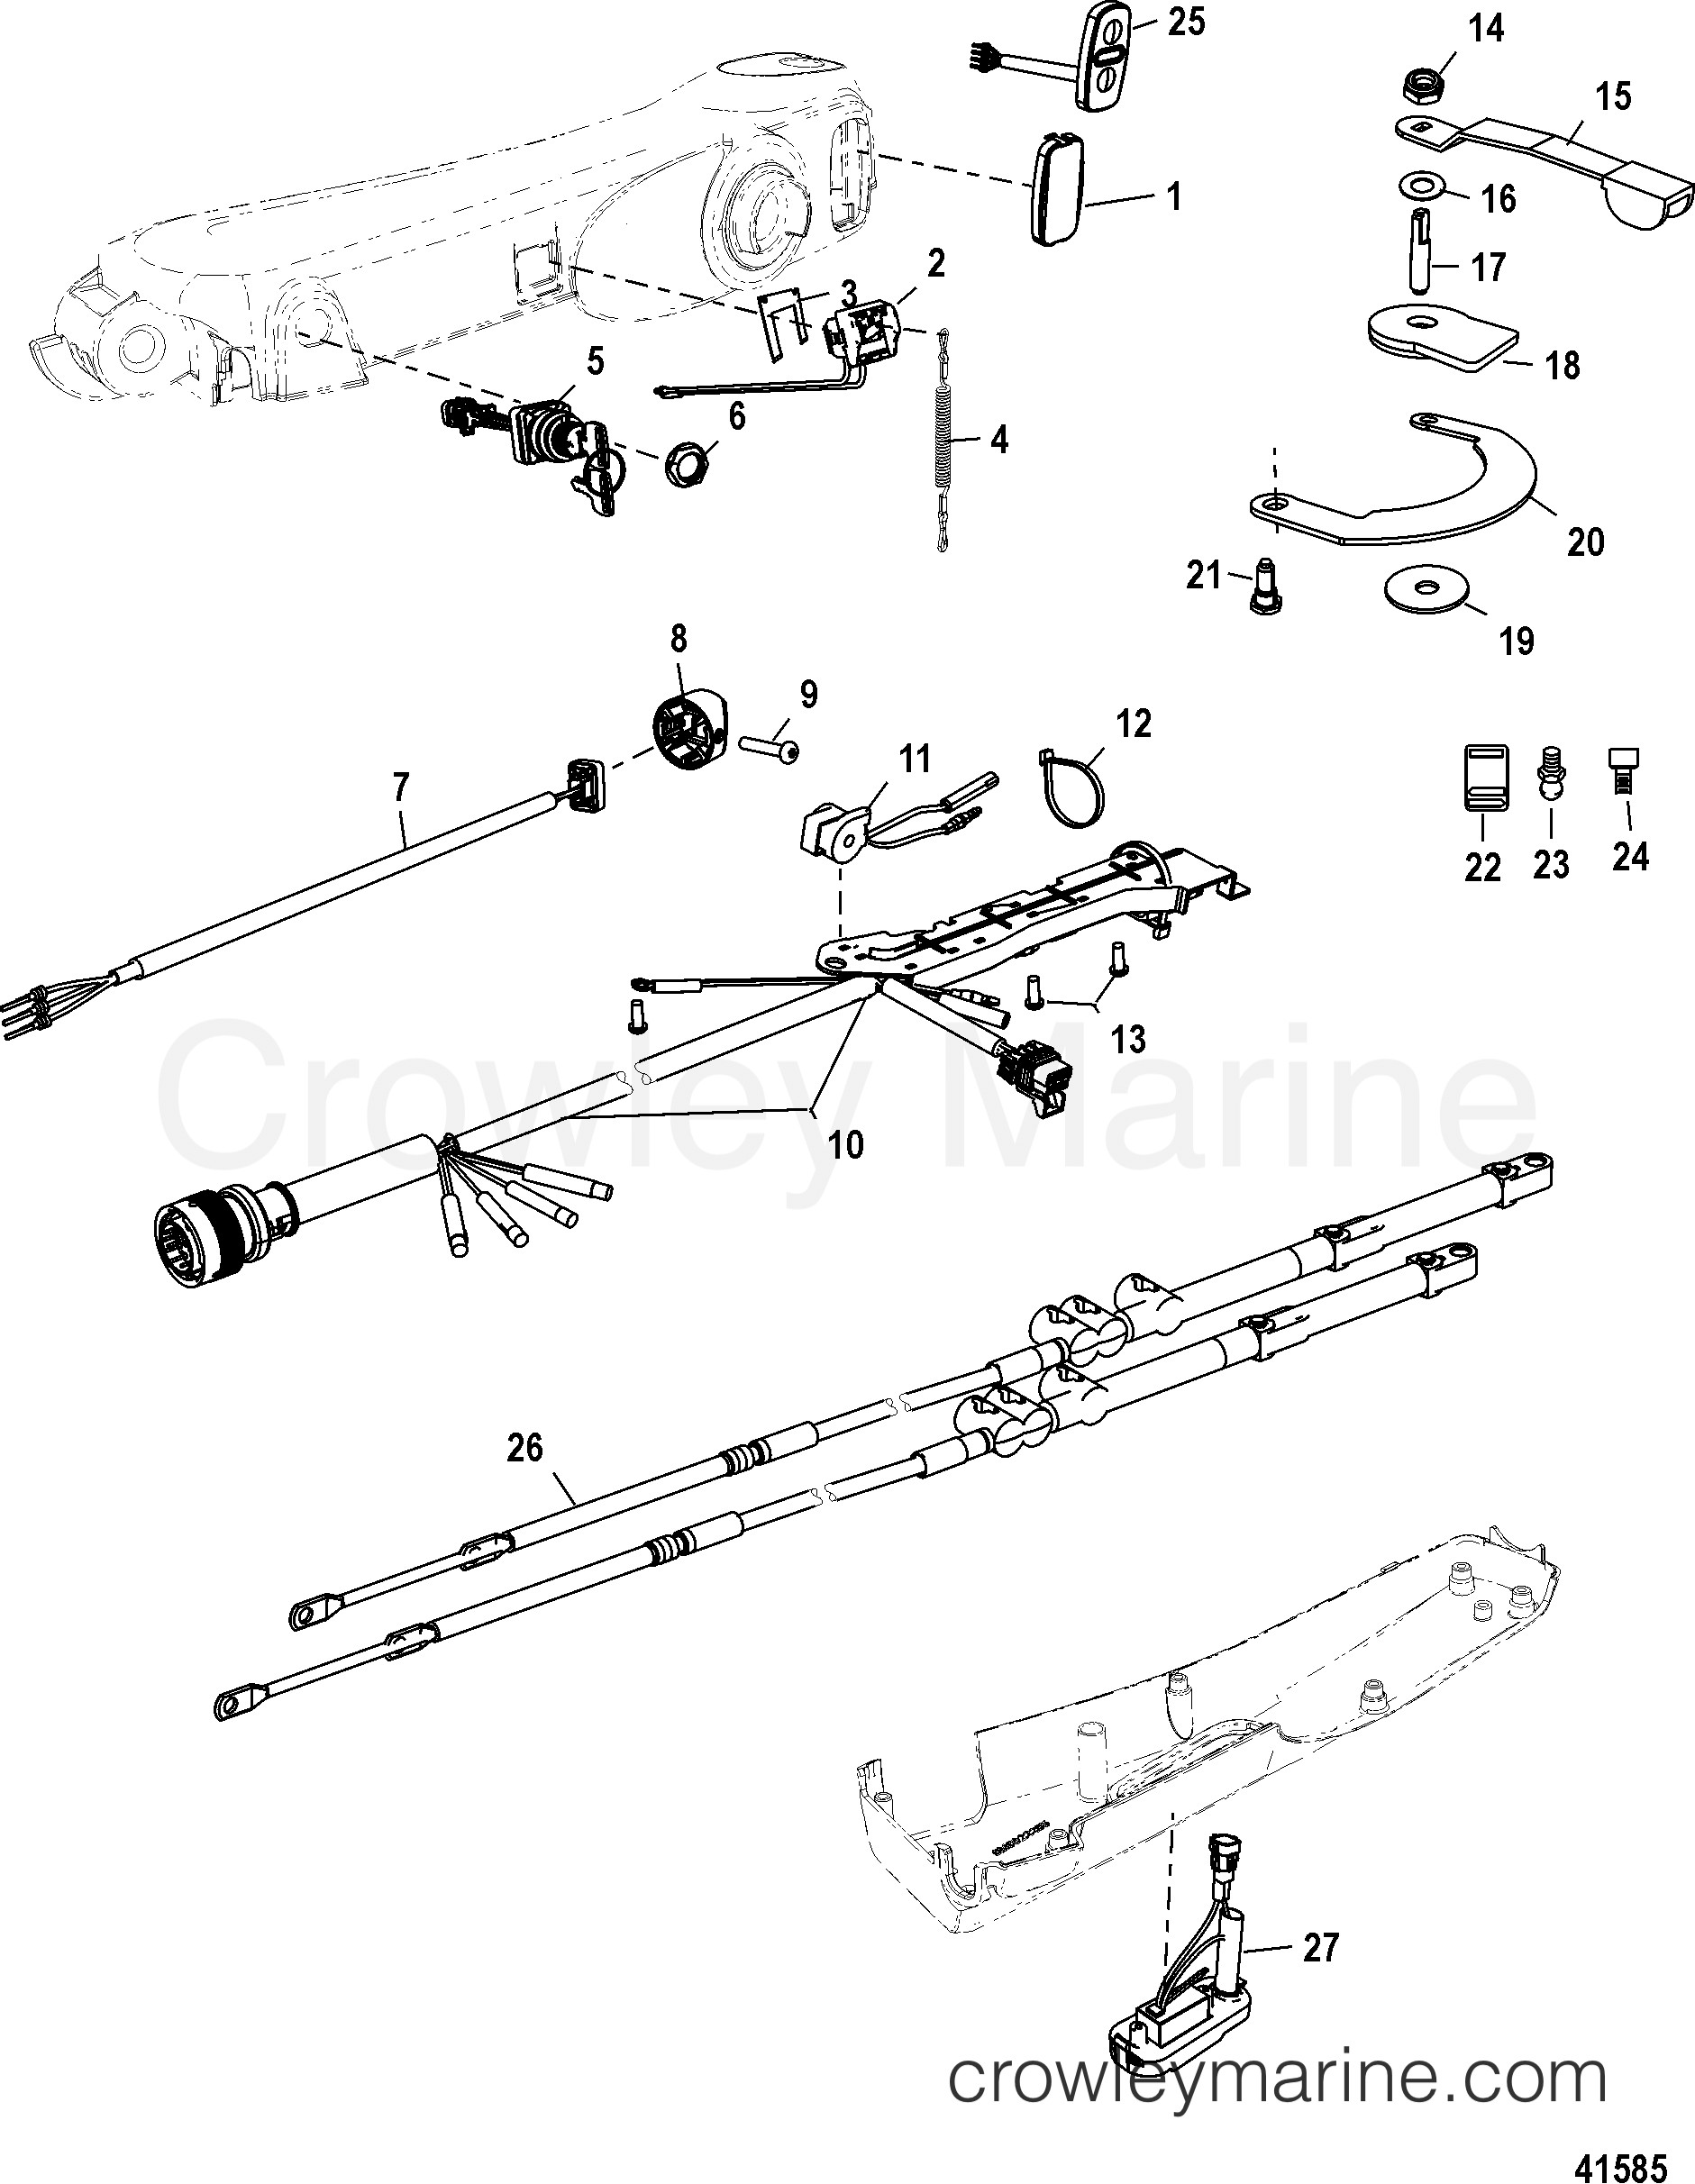 4 Stroke Engine Diagram Parts Mercury Mercury 25 4 Stroke